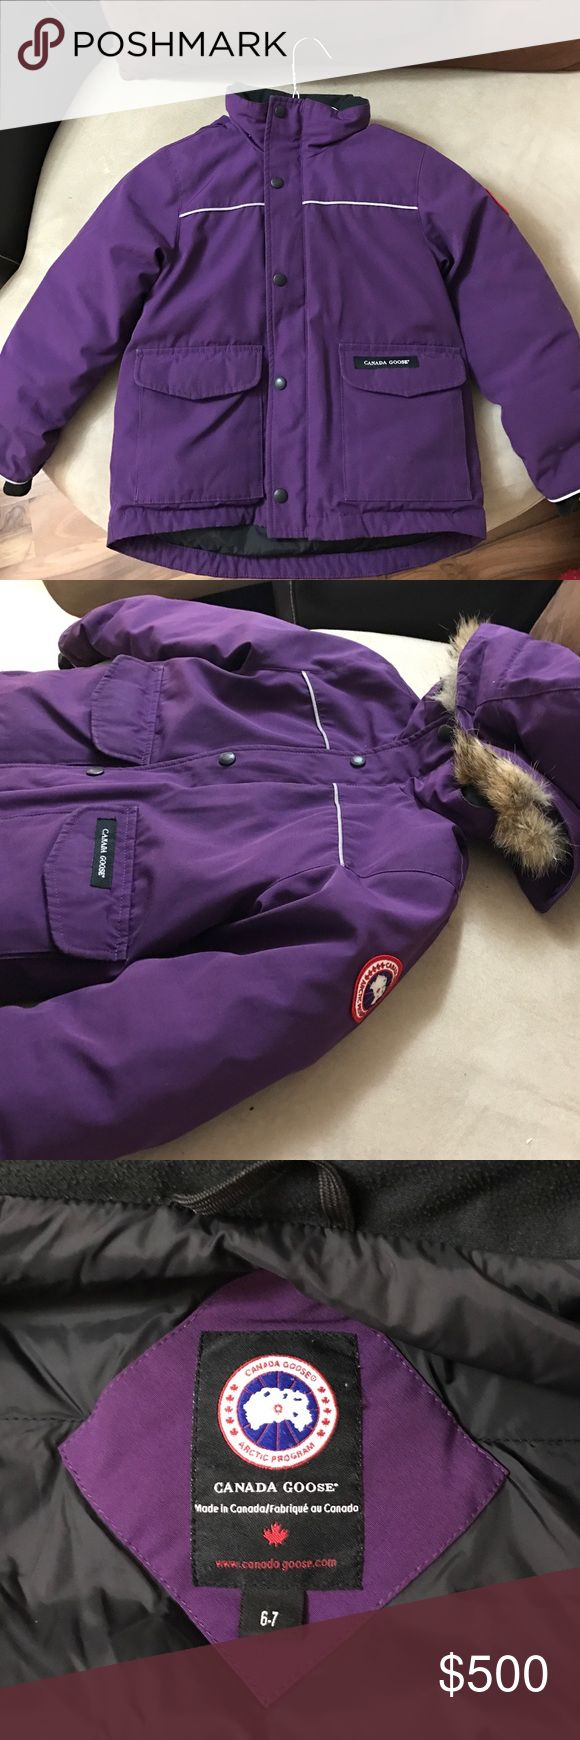 Kids Purple Canada Goose Coat Previously Loved Kids Canada Goose Coat. Excellent Condition. Name written on Goose ID. Price Negotiable. Make an offer. Canada Goose Jackets & Coats Puffers